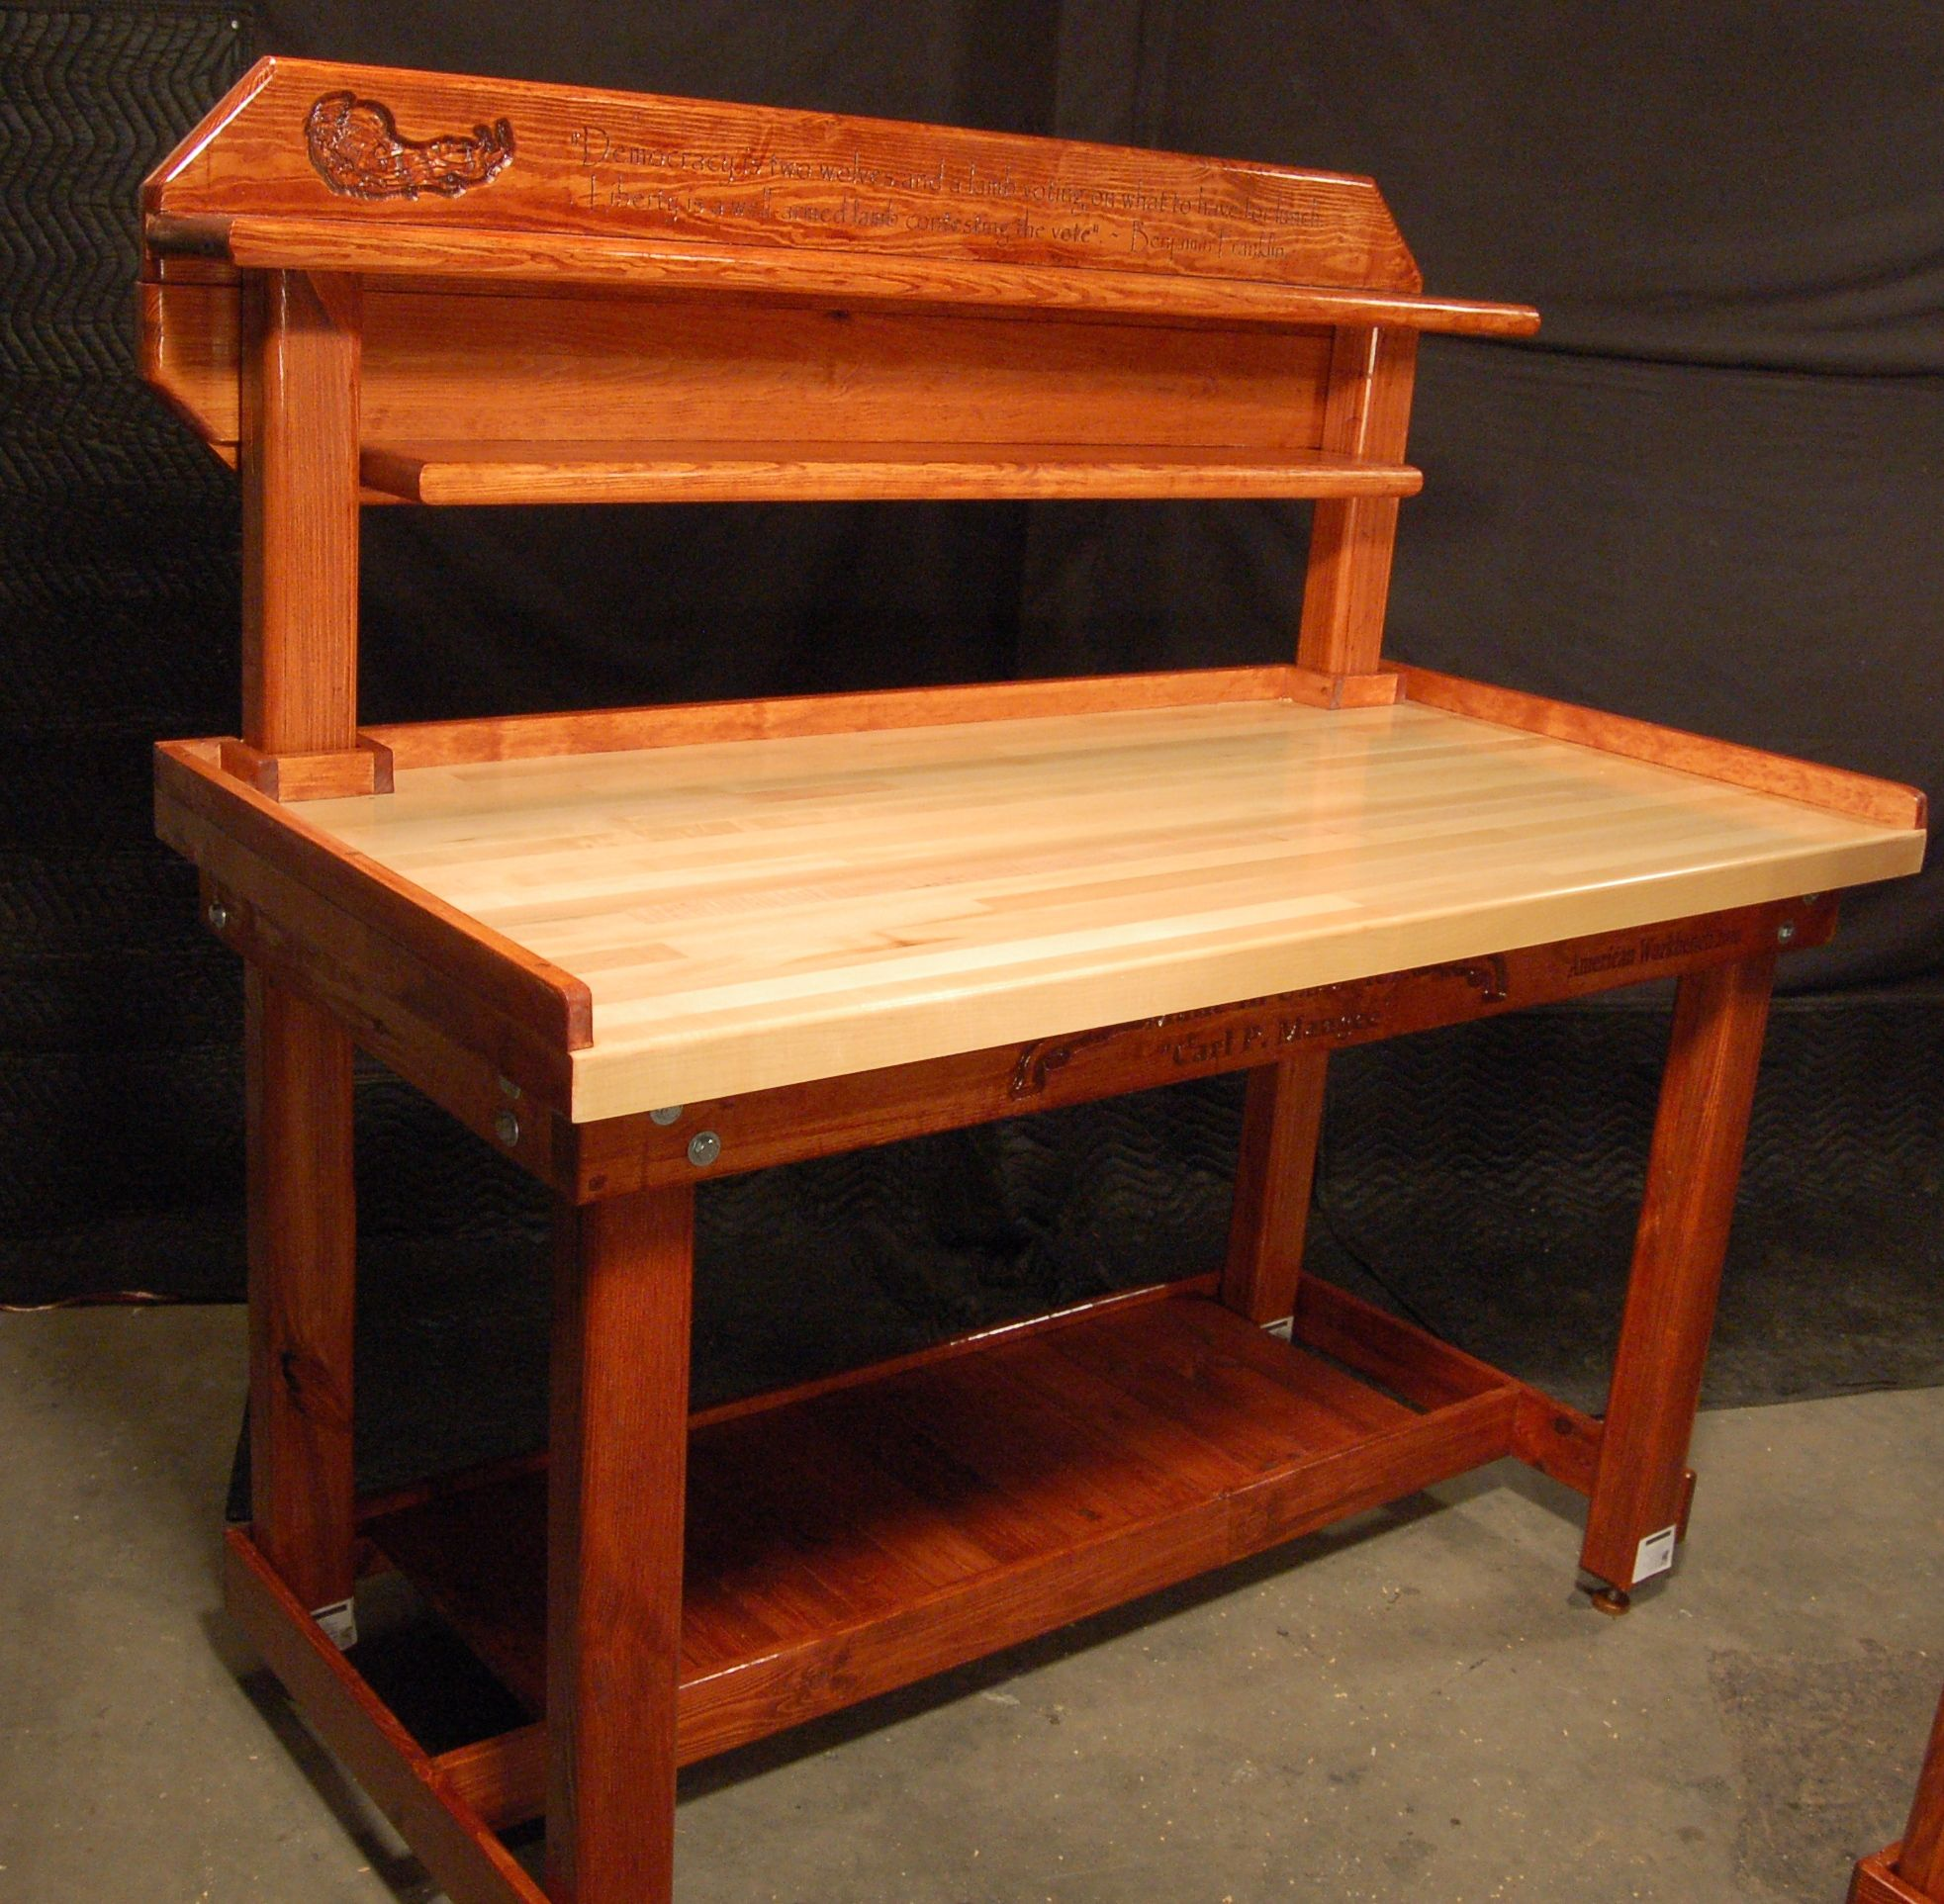 wooden loading bench